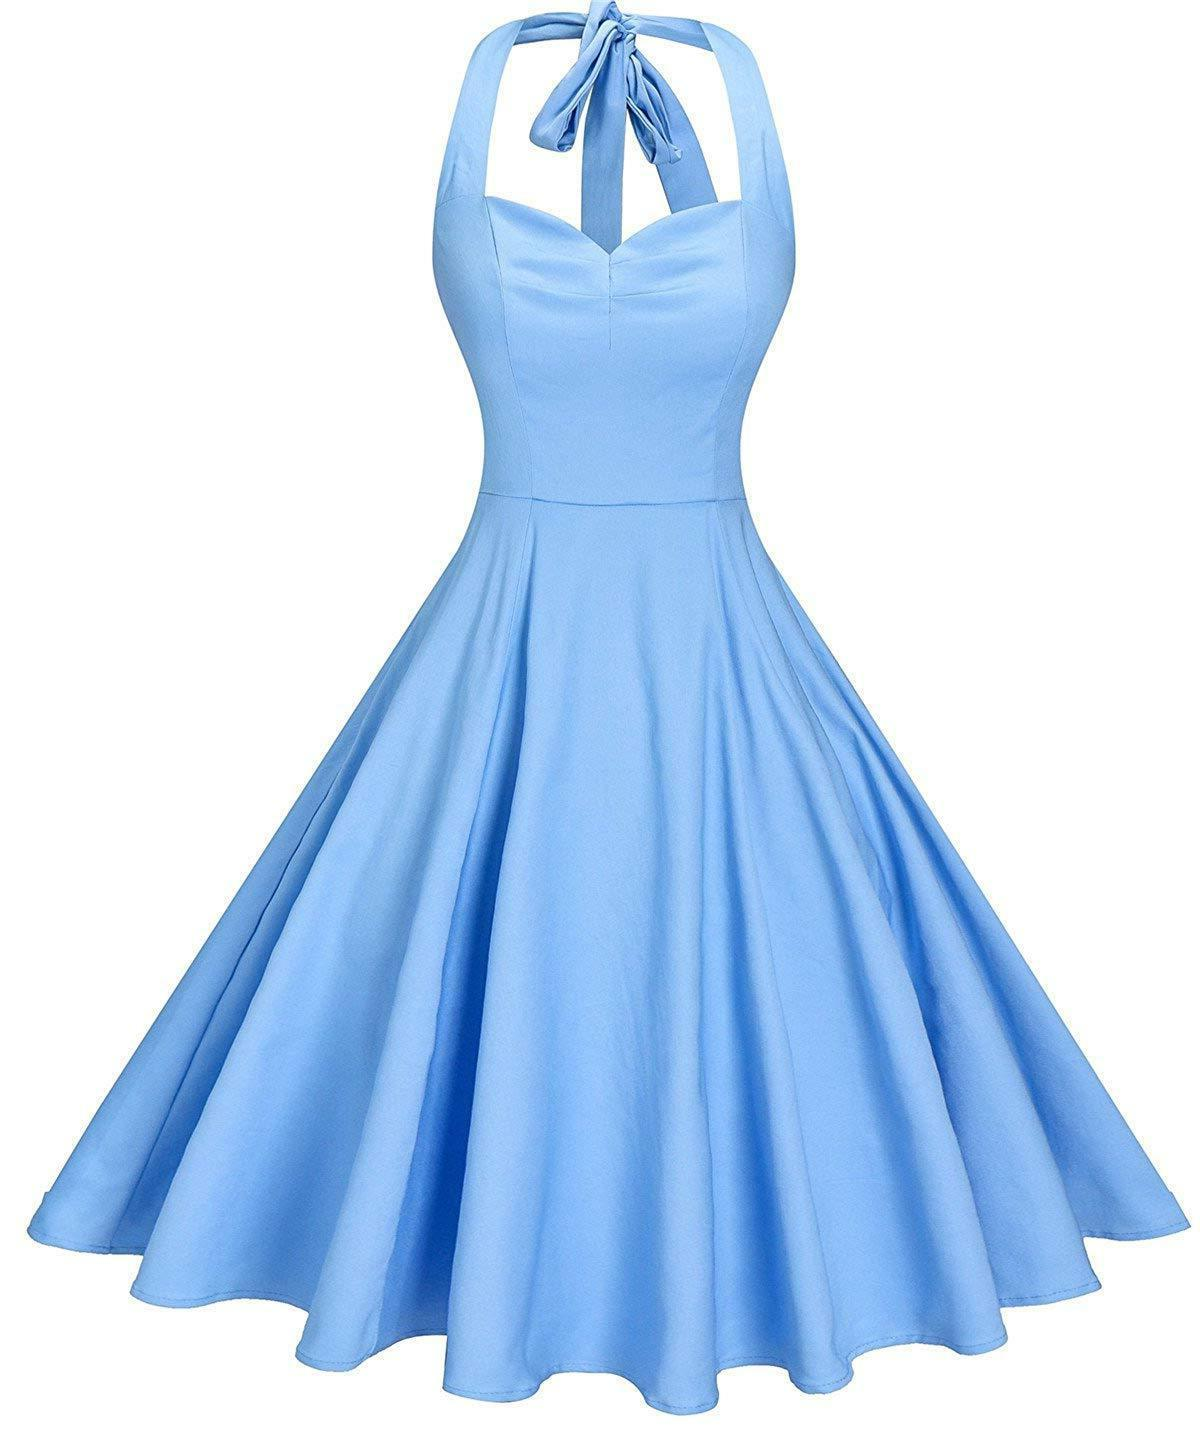 V fashion 50s Halter Swing